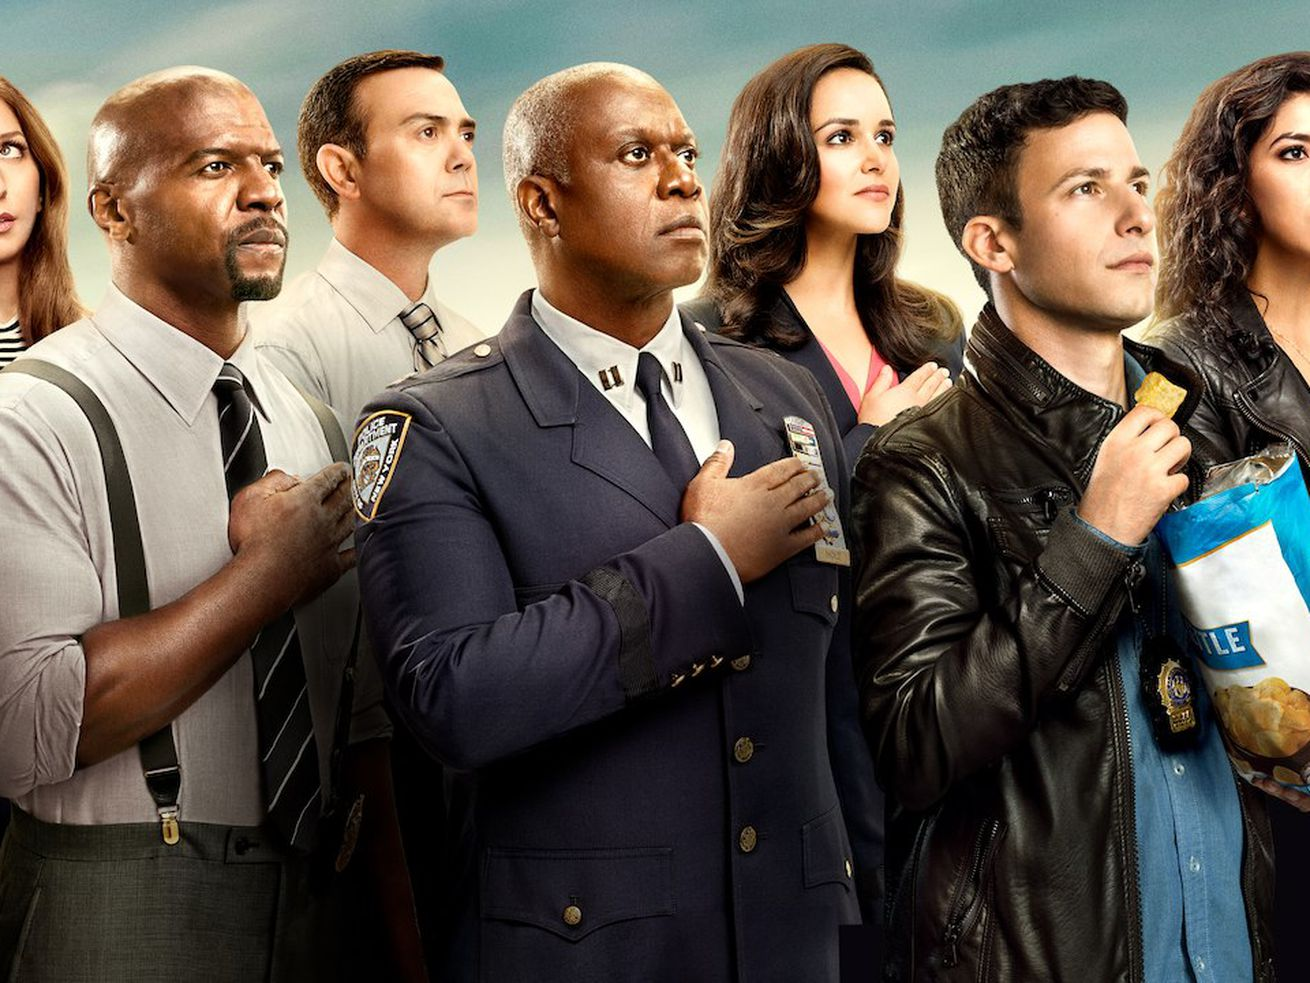 The cast of Brooklyn Nine Nine, a truly delightful show that will now live on